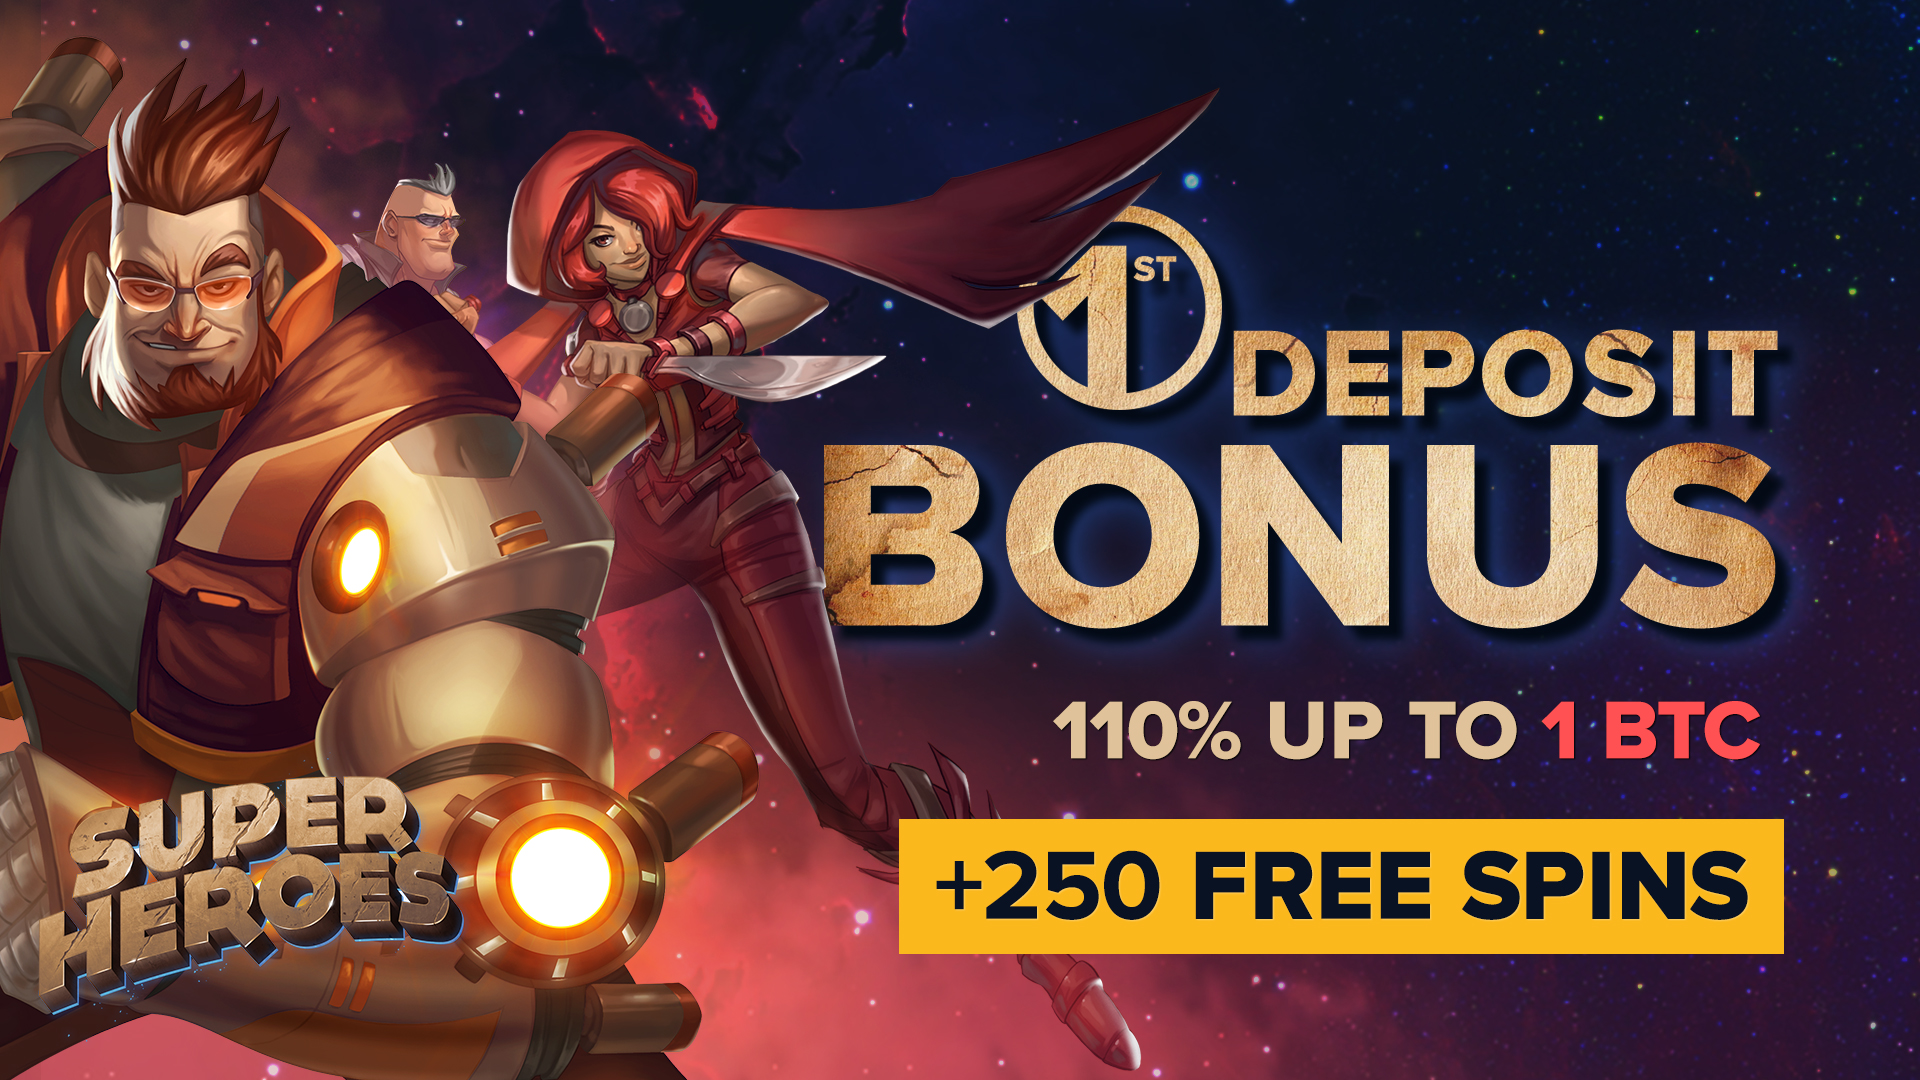 Massive 110% up to 1 BTC First Deposit Bonus + 250 Free Spins at mBitcasino